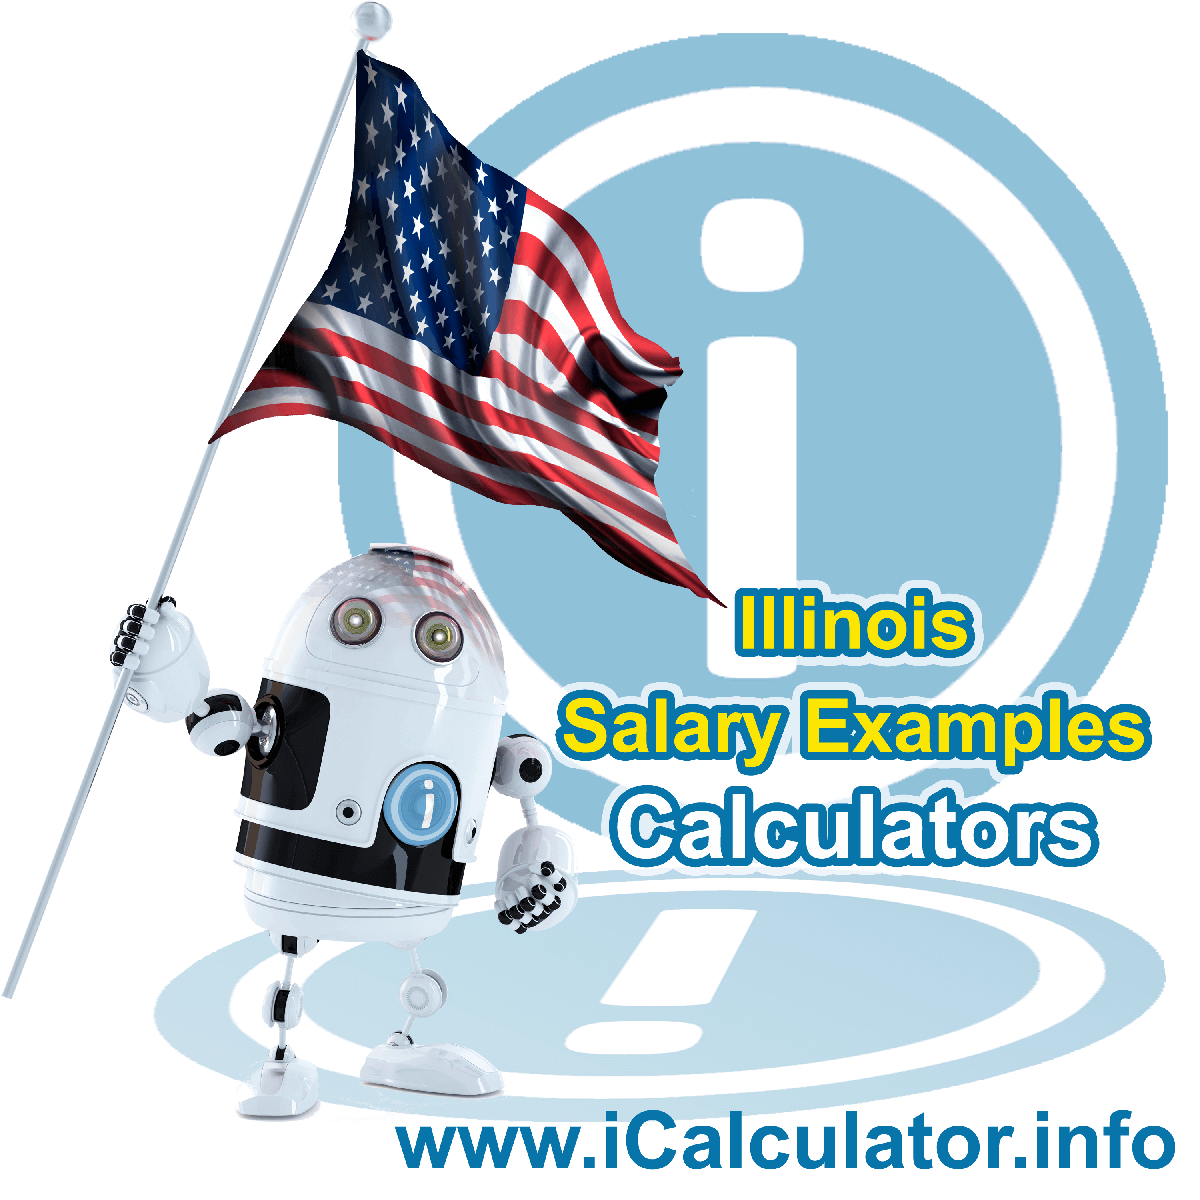 Illinois Salary Example for $120.00 in 2020 | iCalculator | $120.00 salary example for employee and employer paying Illinois State tincome taxes. Detailed salary after tax calculation including Illinois State Tax, Federal State Tax, Medicare Deductions, Social Security, Capital Gains and other income tax and salary deductions complete with supporting Illinois state tax tables